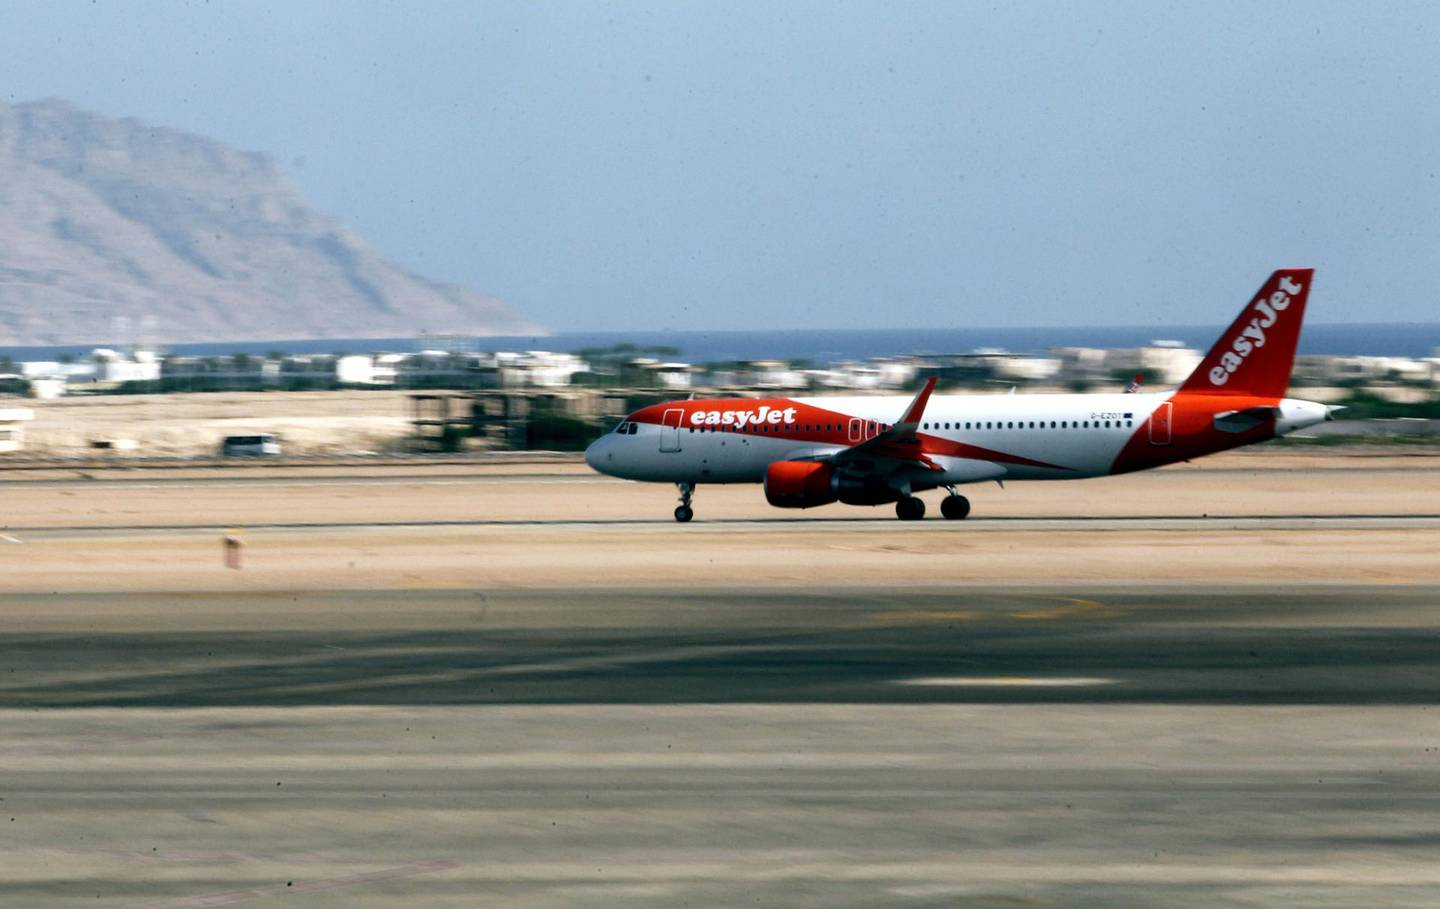 epa07940215 (FILE) - A British EasyJet plane takes off from Sharm el-Sheikh airport, Sharm el-Sheikh, Egypt, 06 November 2015 (reissued 22 October 2019). According to media reports on 22 October 2019, the UK ended a ban on flights to Sharm el-Sheikh in Egypt after nearly a four-year ban since November 2015 following bombing of a Russian jet.  EPA/KHALED ELFIQI *** Local Caption *** 52358448